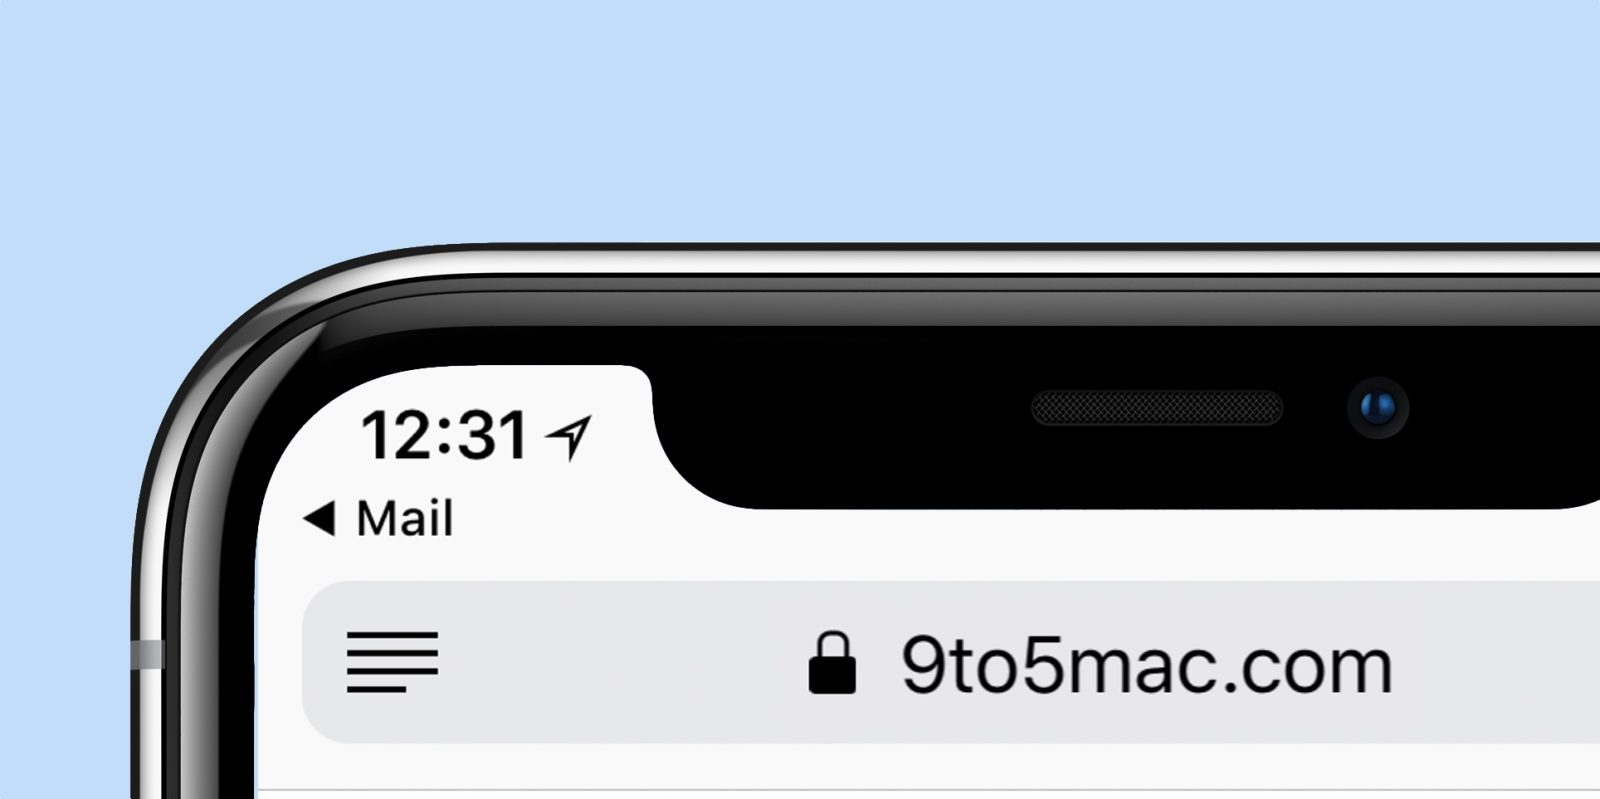 outlet store 108ba 2fd7a Opinion: Breadcrumb back button navigation on iPhone X is strangely ...